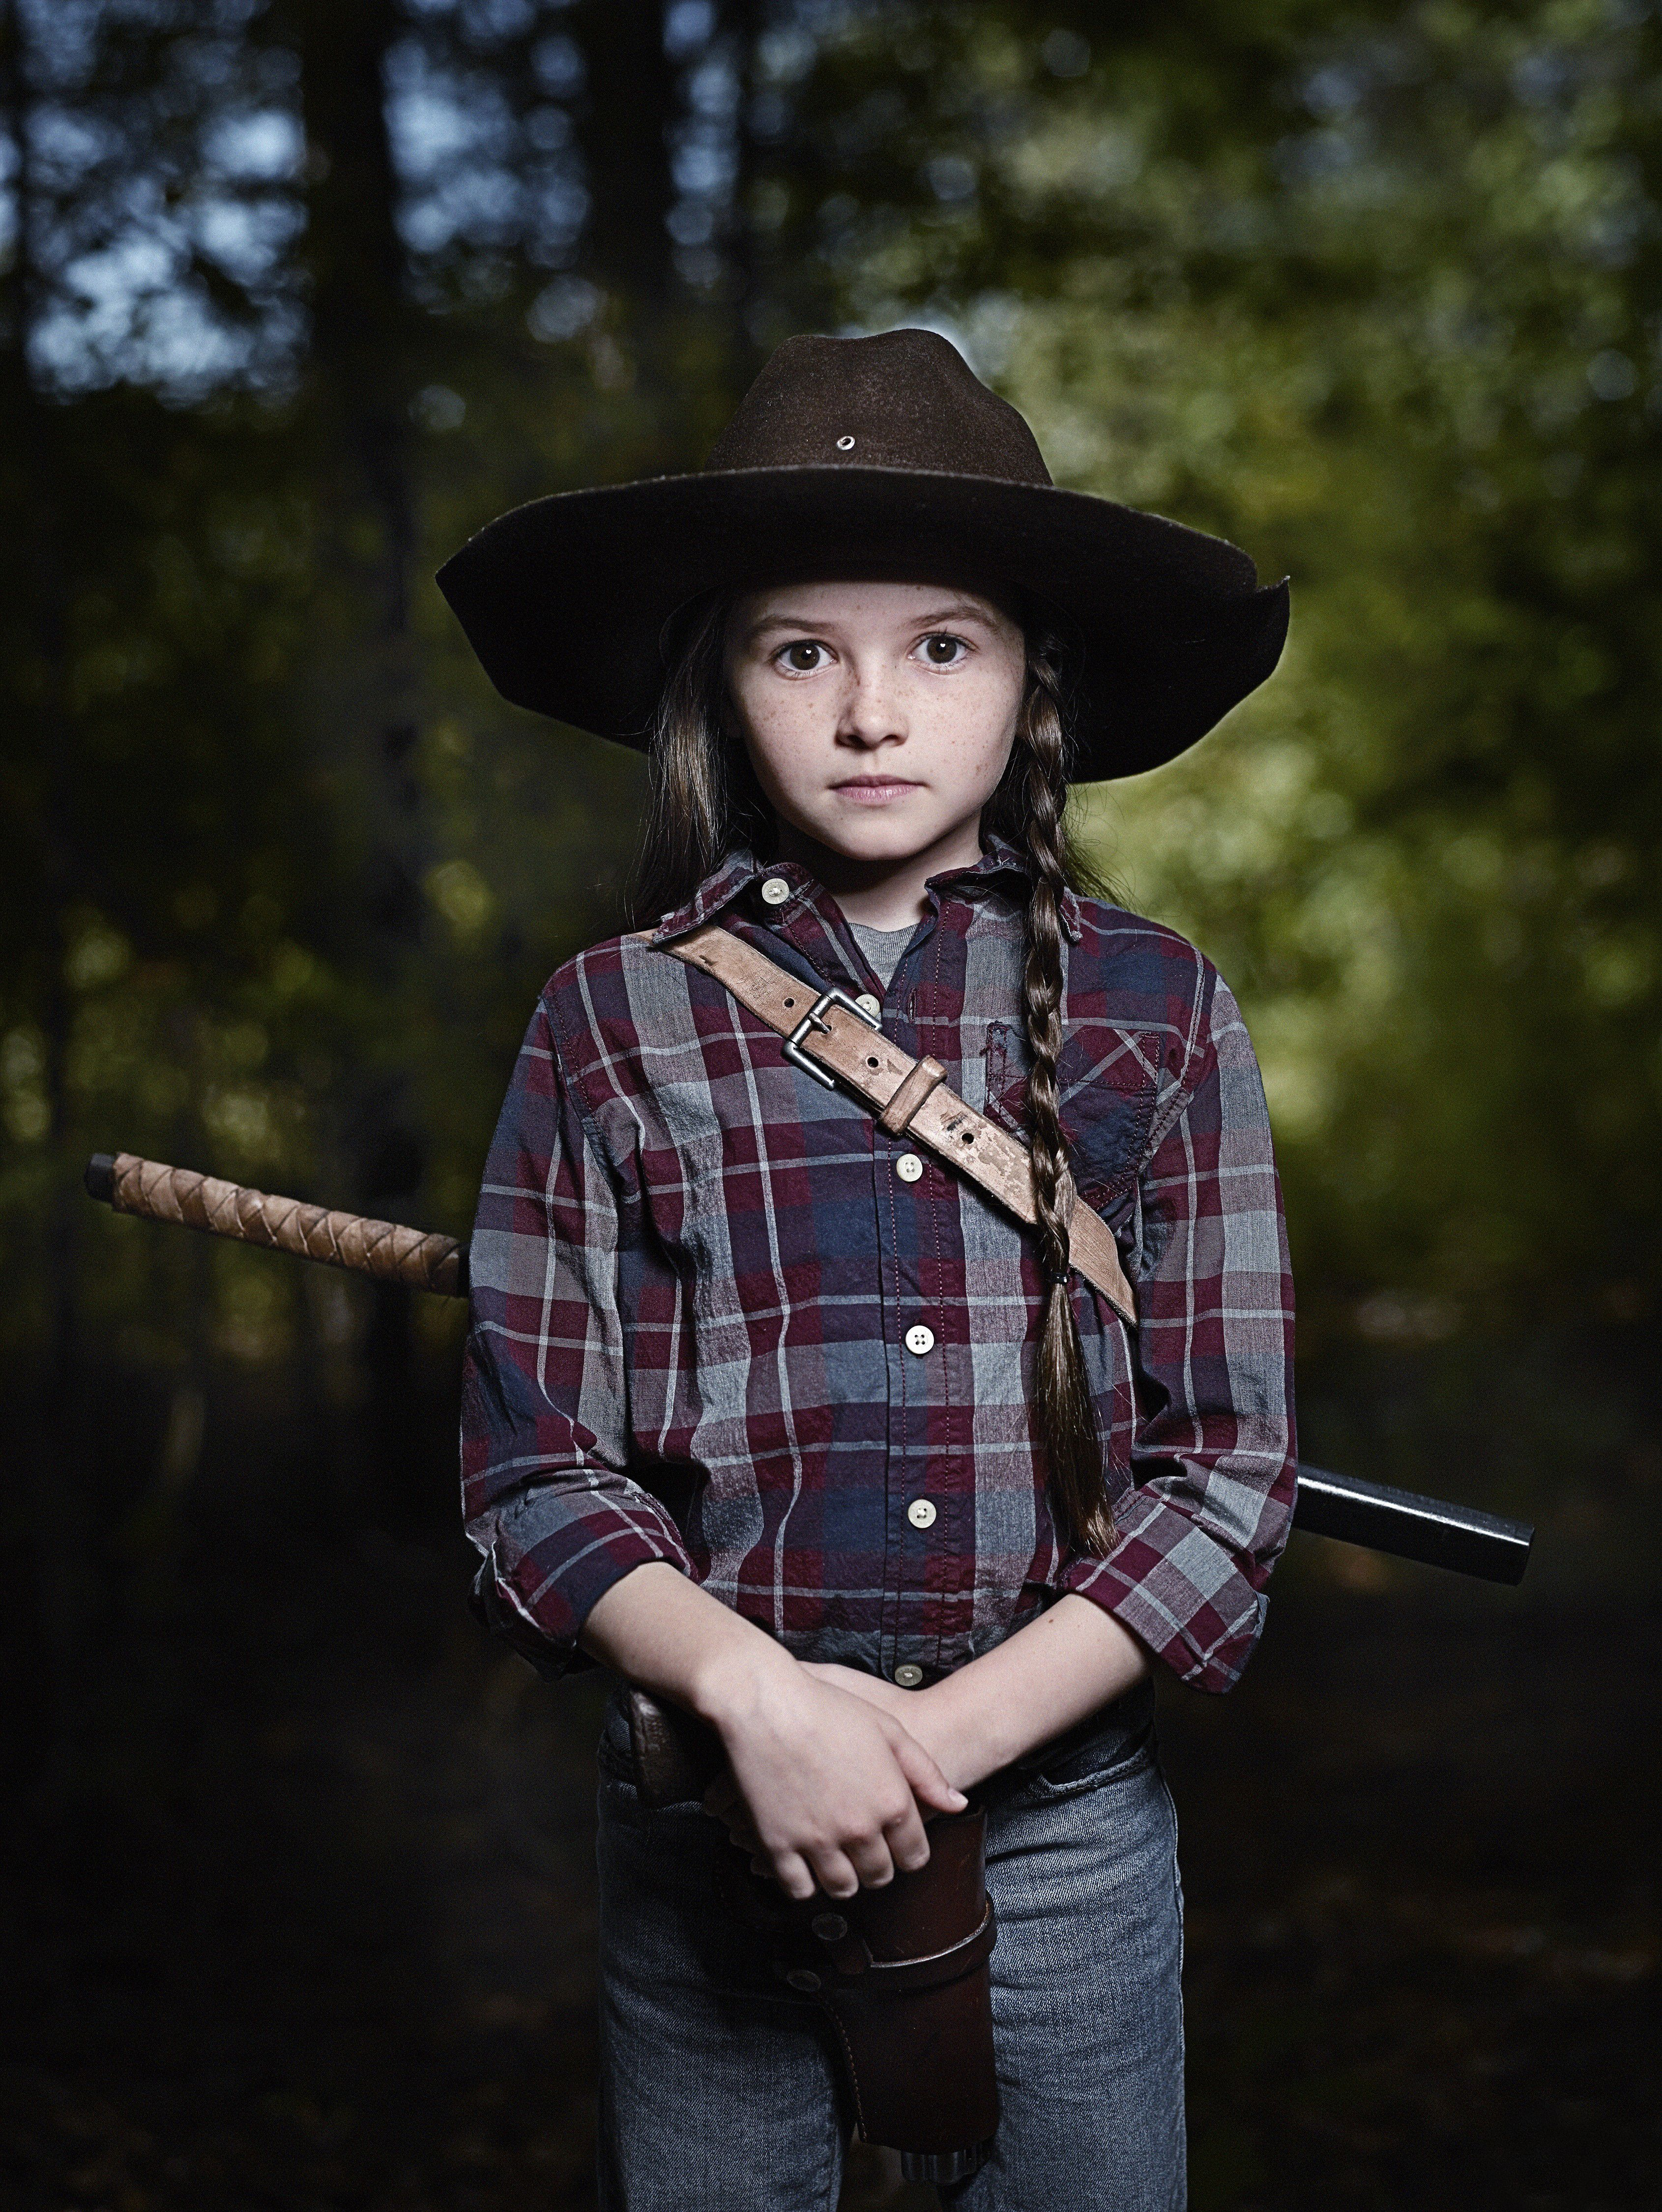 The Walking Dead S9 Cailey Fleming As Judith Grimes